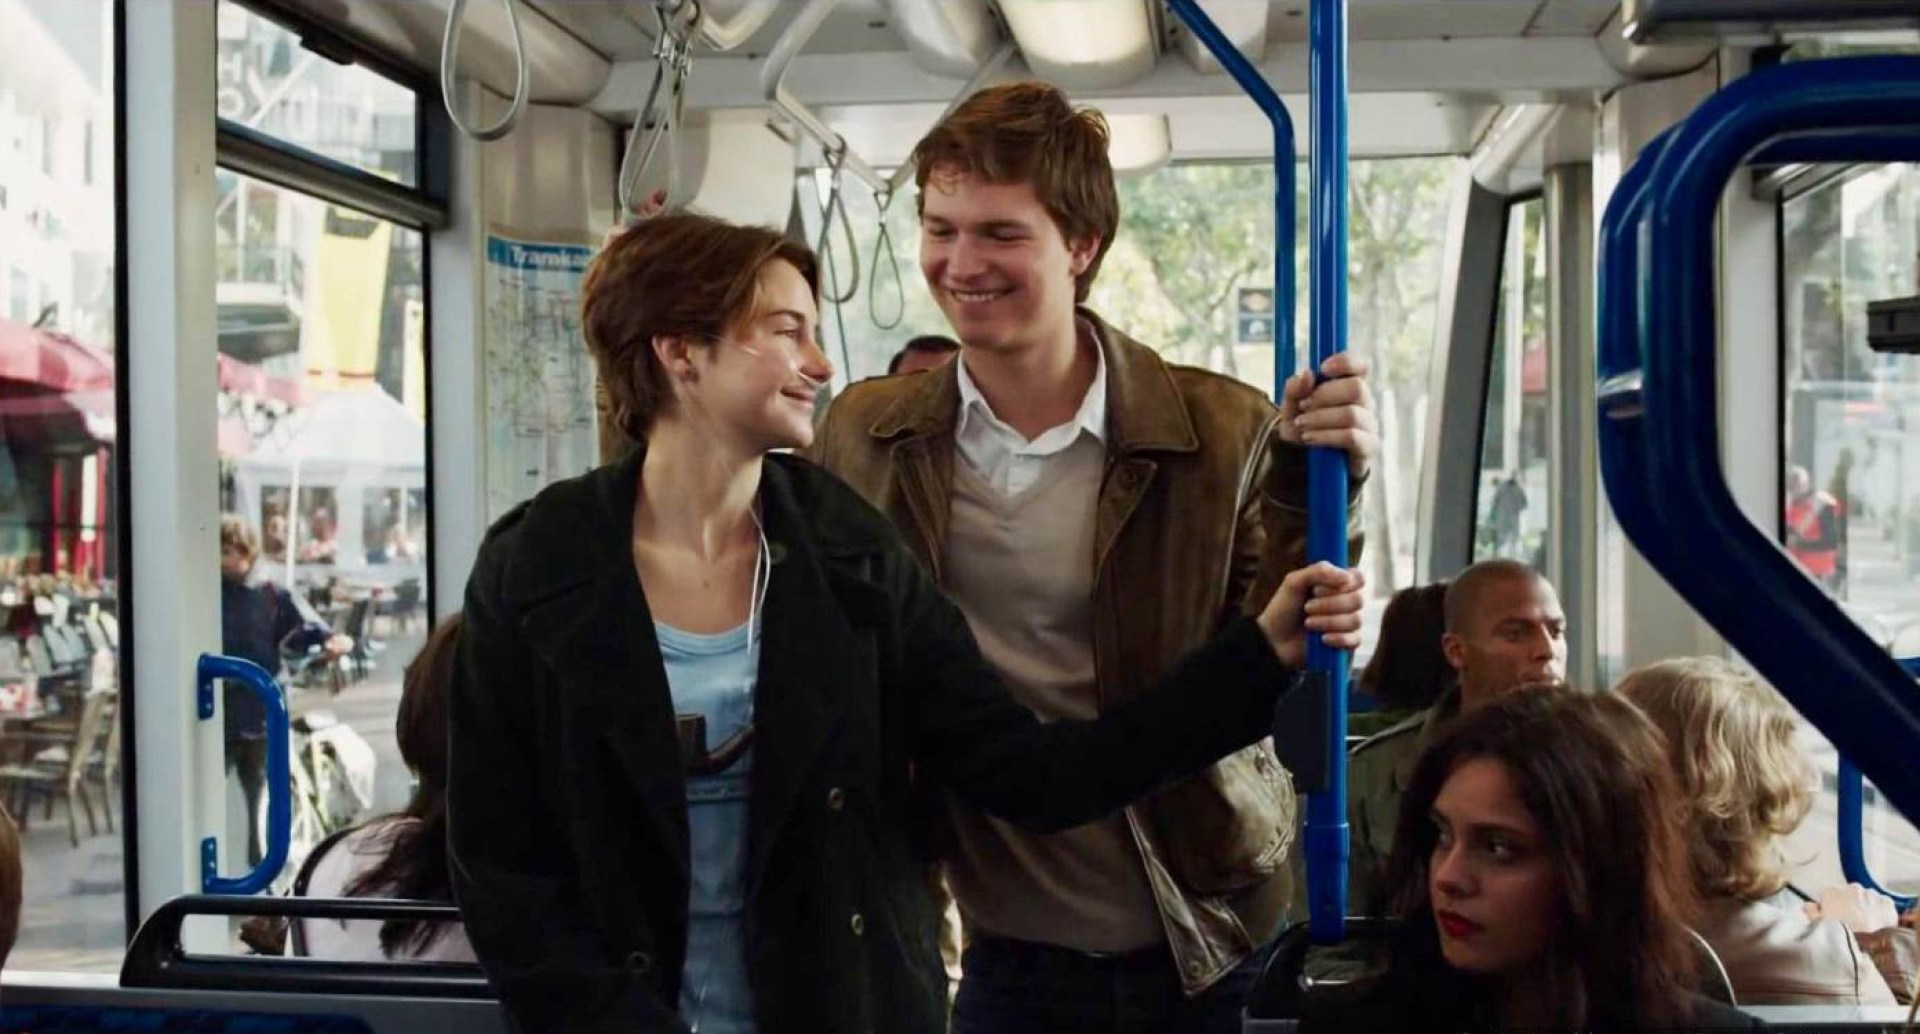 ansel-elgort-in-the-fault-in-our-stars-movie-3